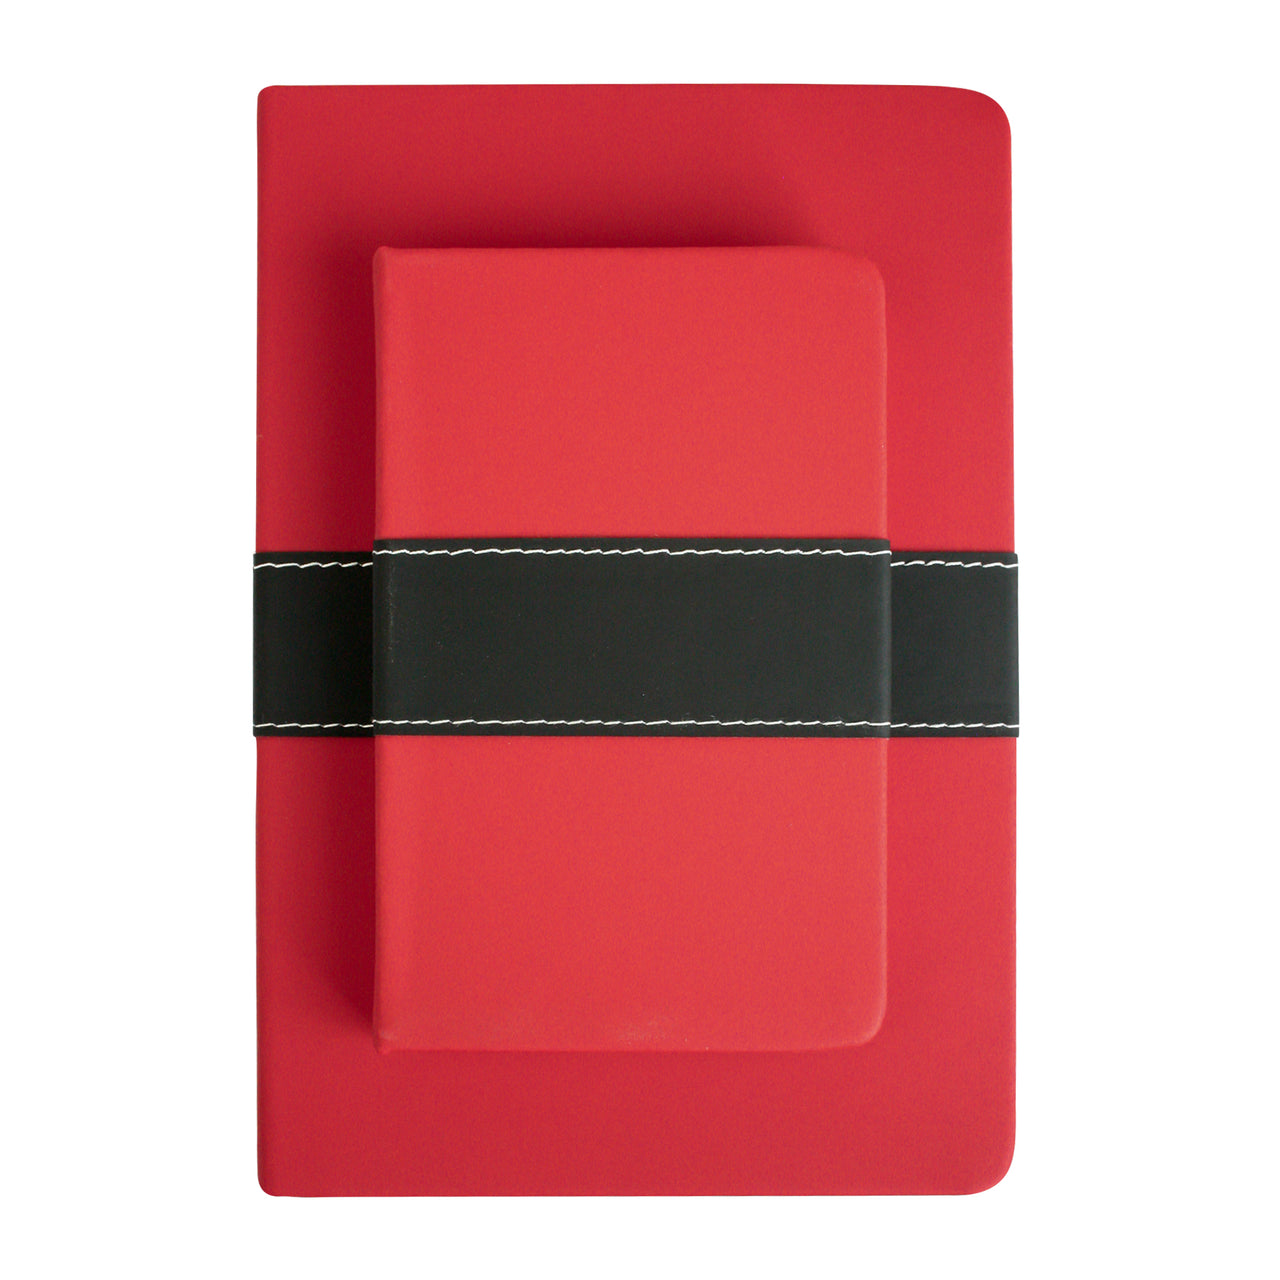 A5 & A6 PU Leather Hardbound Notebook - Red - EMARTBUY